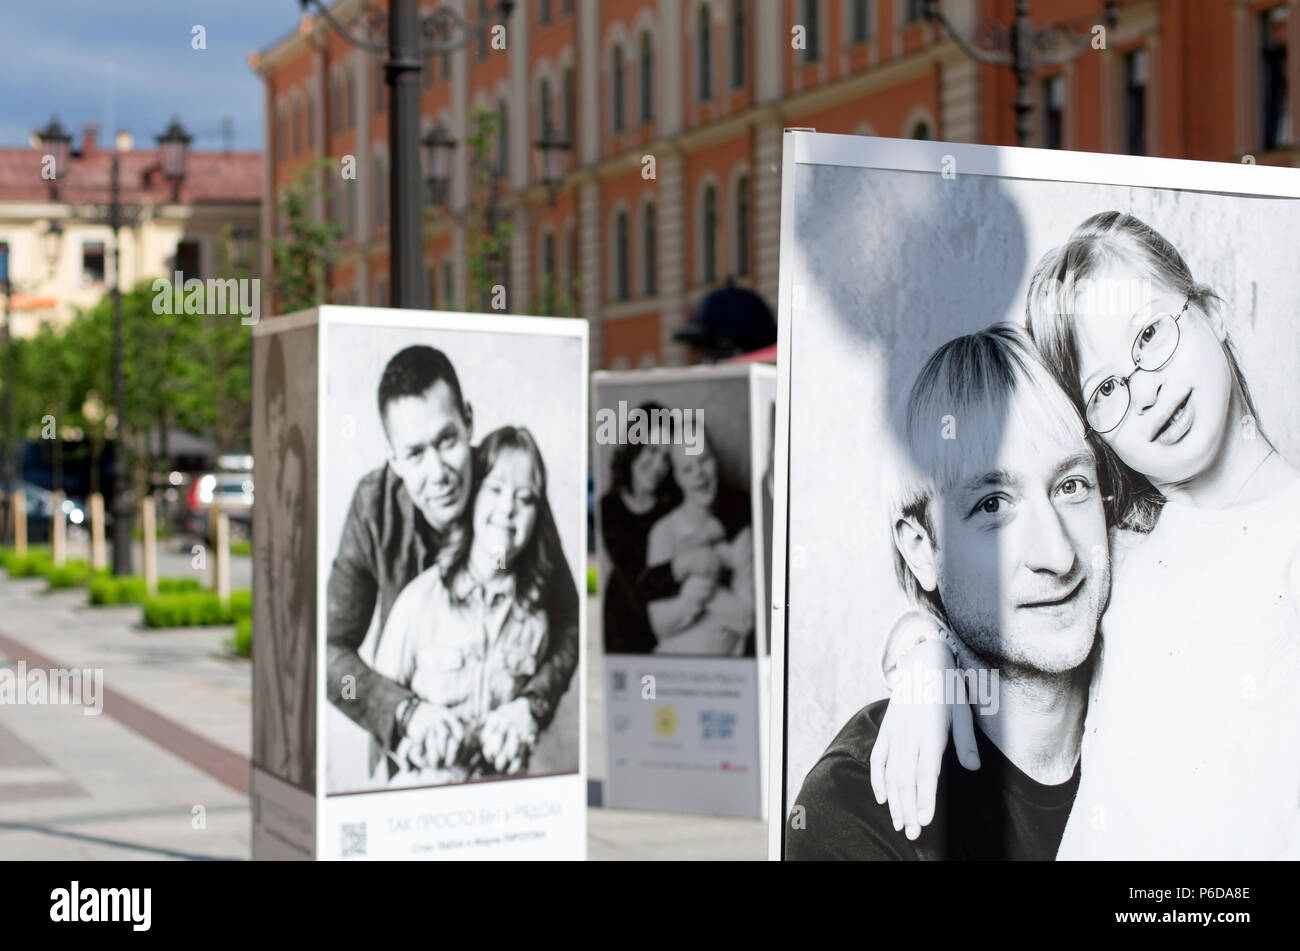 St. Petersburg, Russia - July 23, 2017: Posters with a charity project to help children with Down's syndrome, in which celebrities from Russia - Stock Image